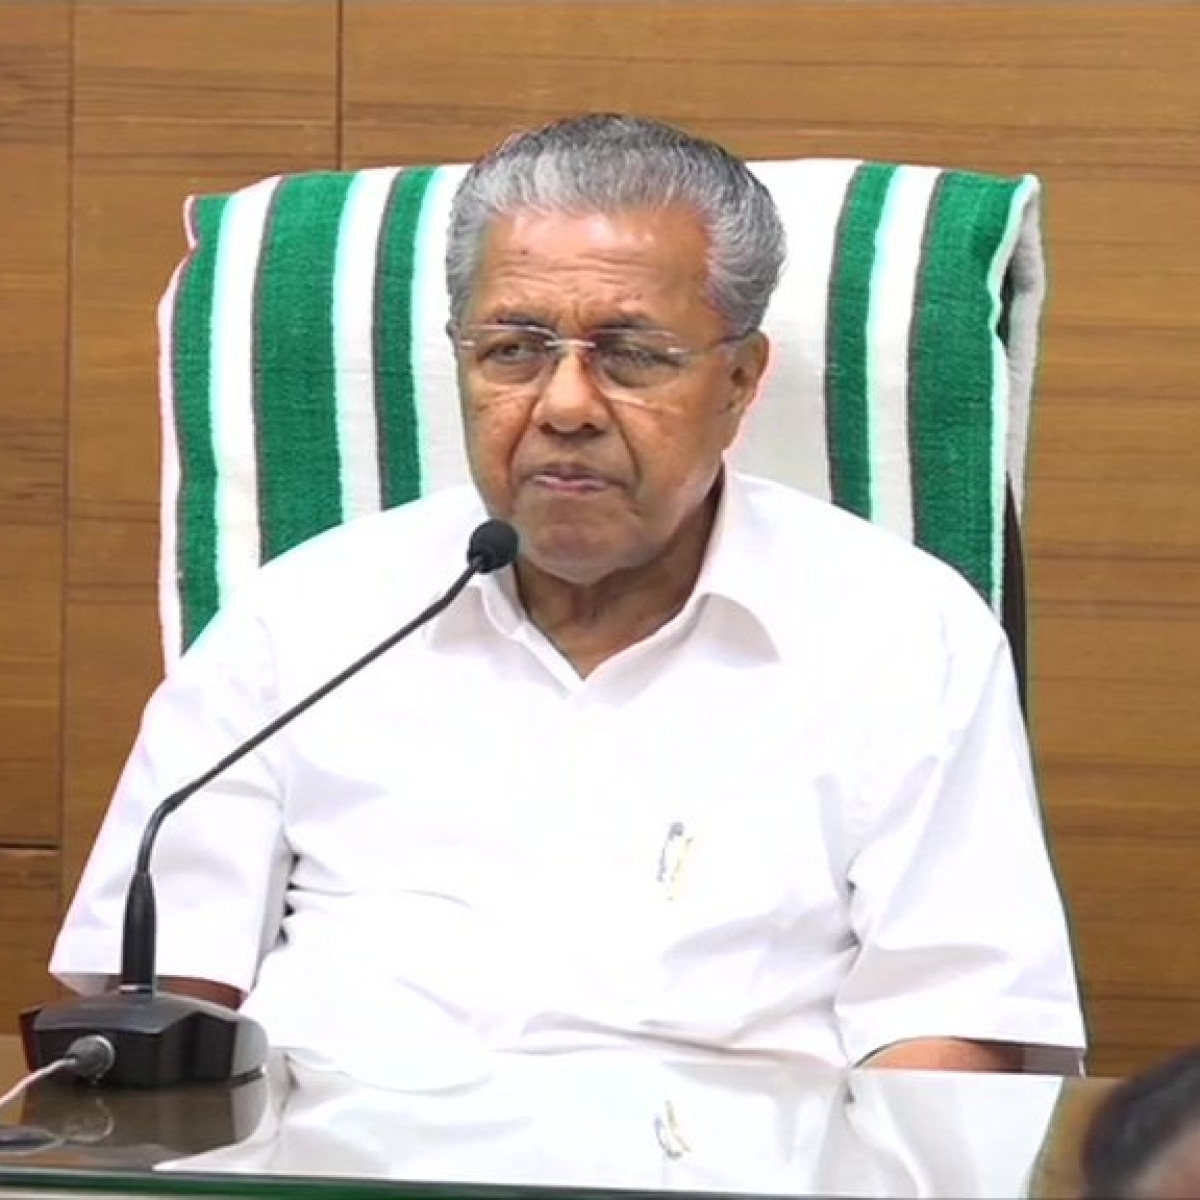 Kerala: Plea in SC against physical swearing-in ceremony of Pinarayi Vijayan govt amid COVID-19